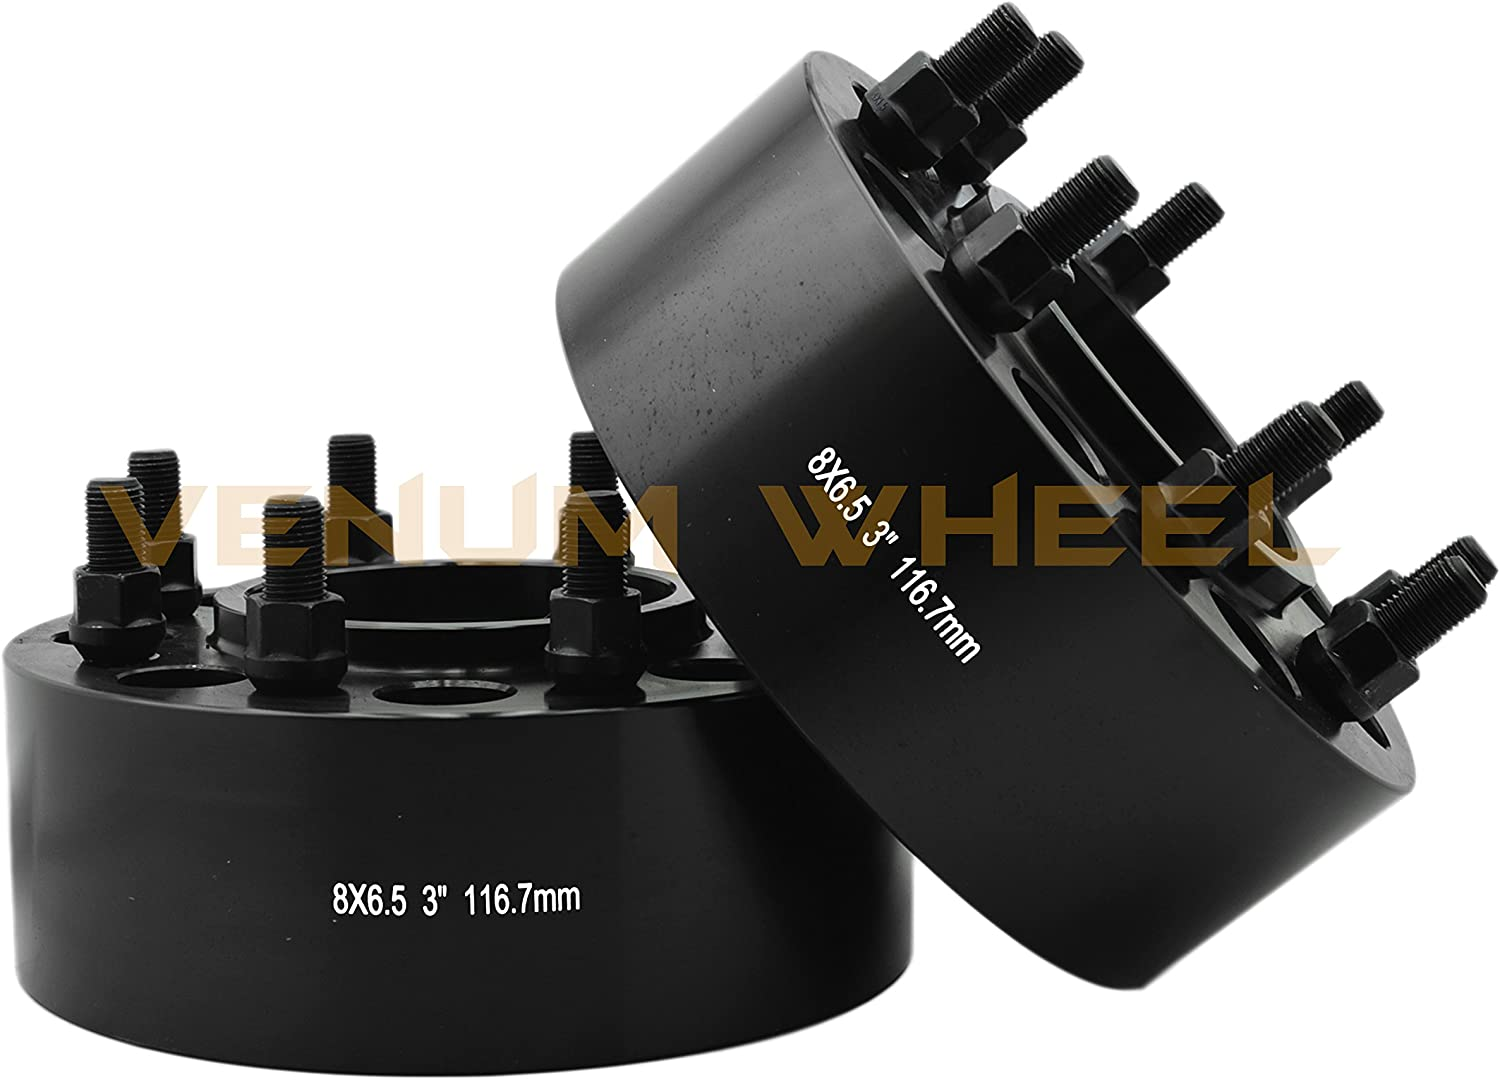 REAR ONLY Fits Silverado Sierra 1500HD 2500HD Heavy Duty 2 Pc 8x6.5 Black Hub Centric Wheel Spacers Adapters Designed For the